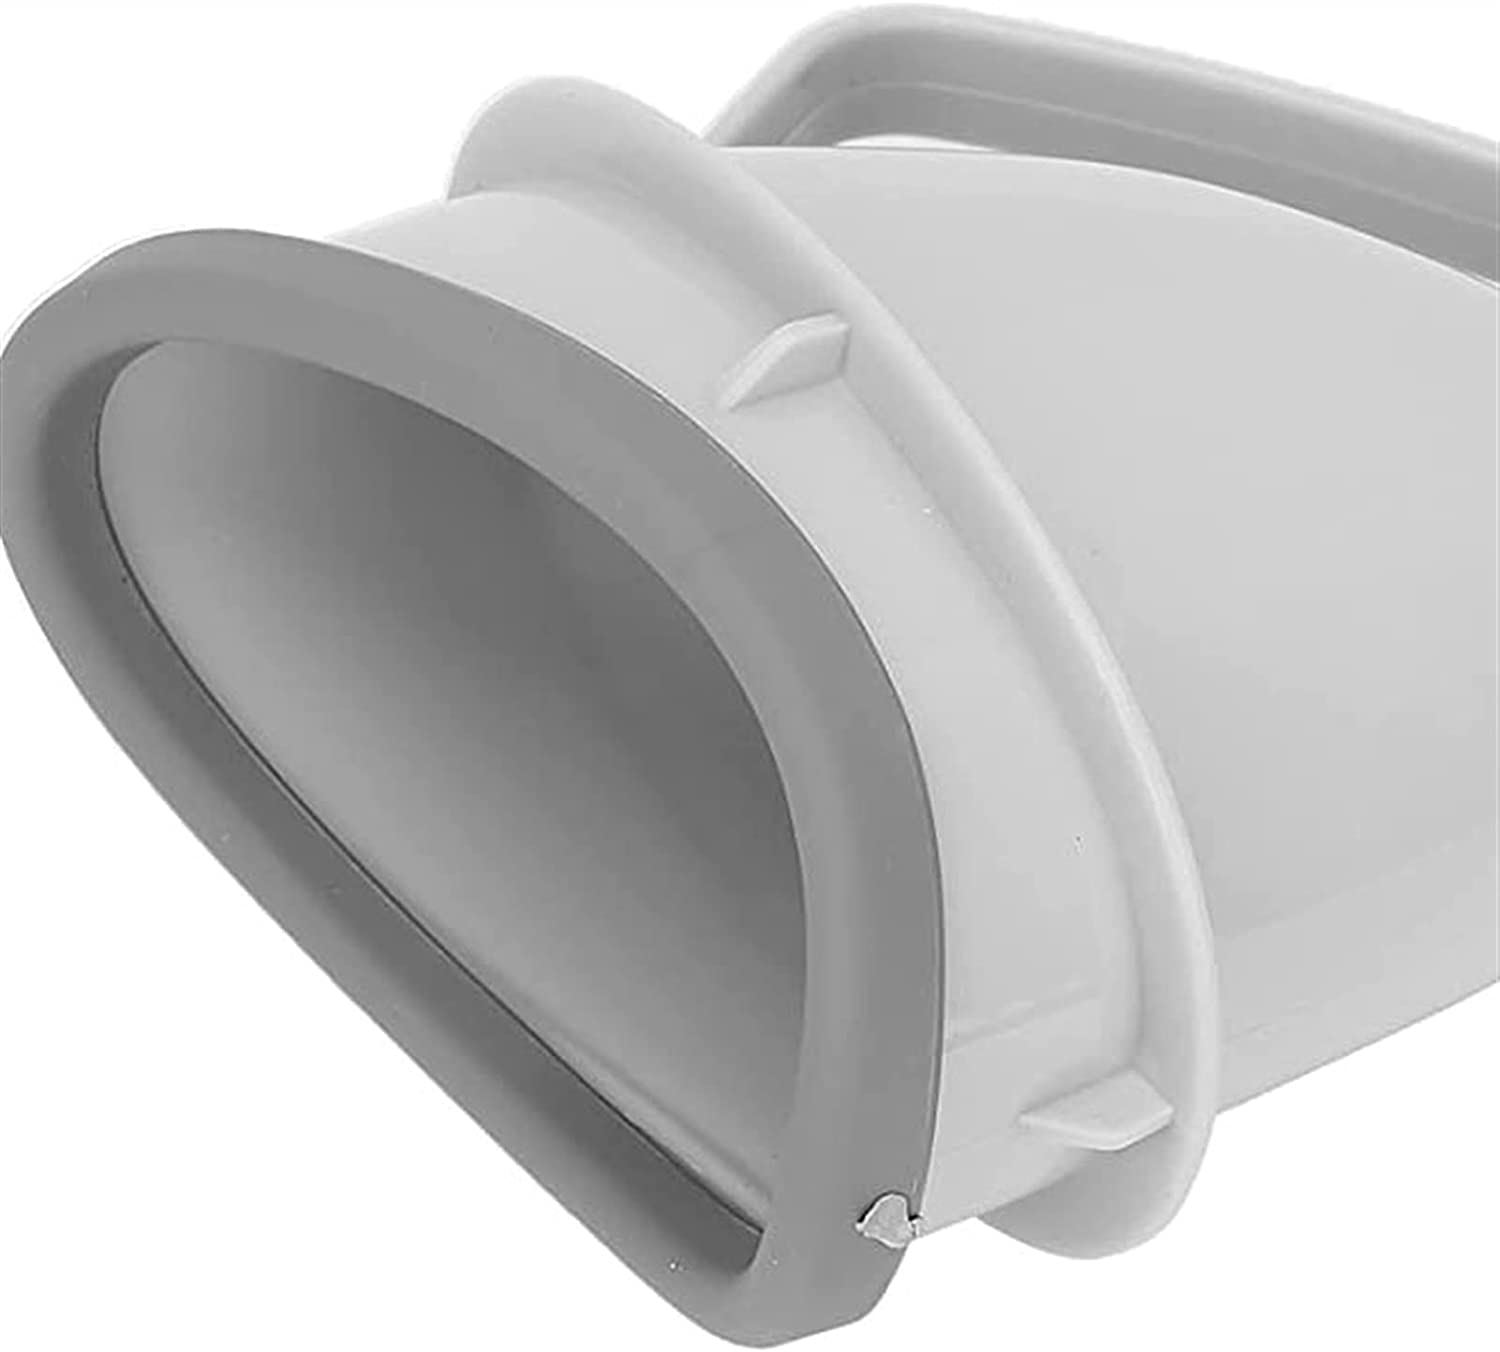 XXFI Ranking TOP17 Unisex Urinal Portable Funnel Device Detroit Mall Urination for Camping